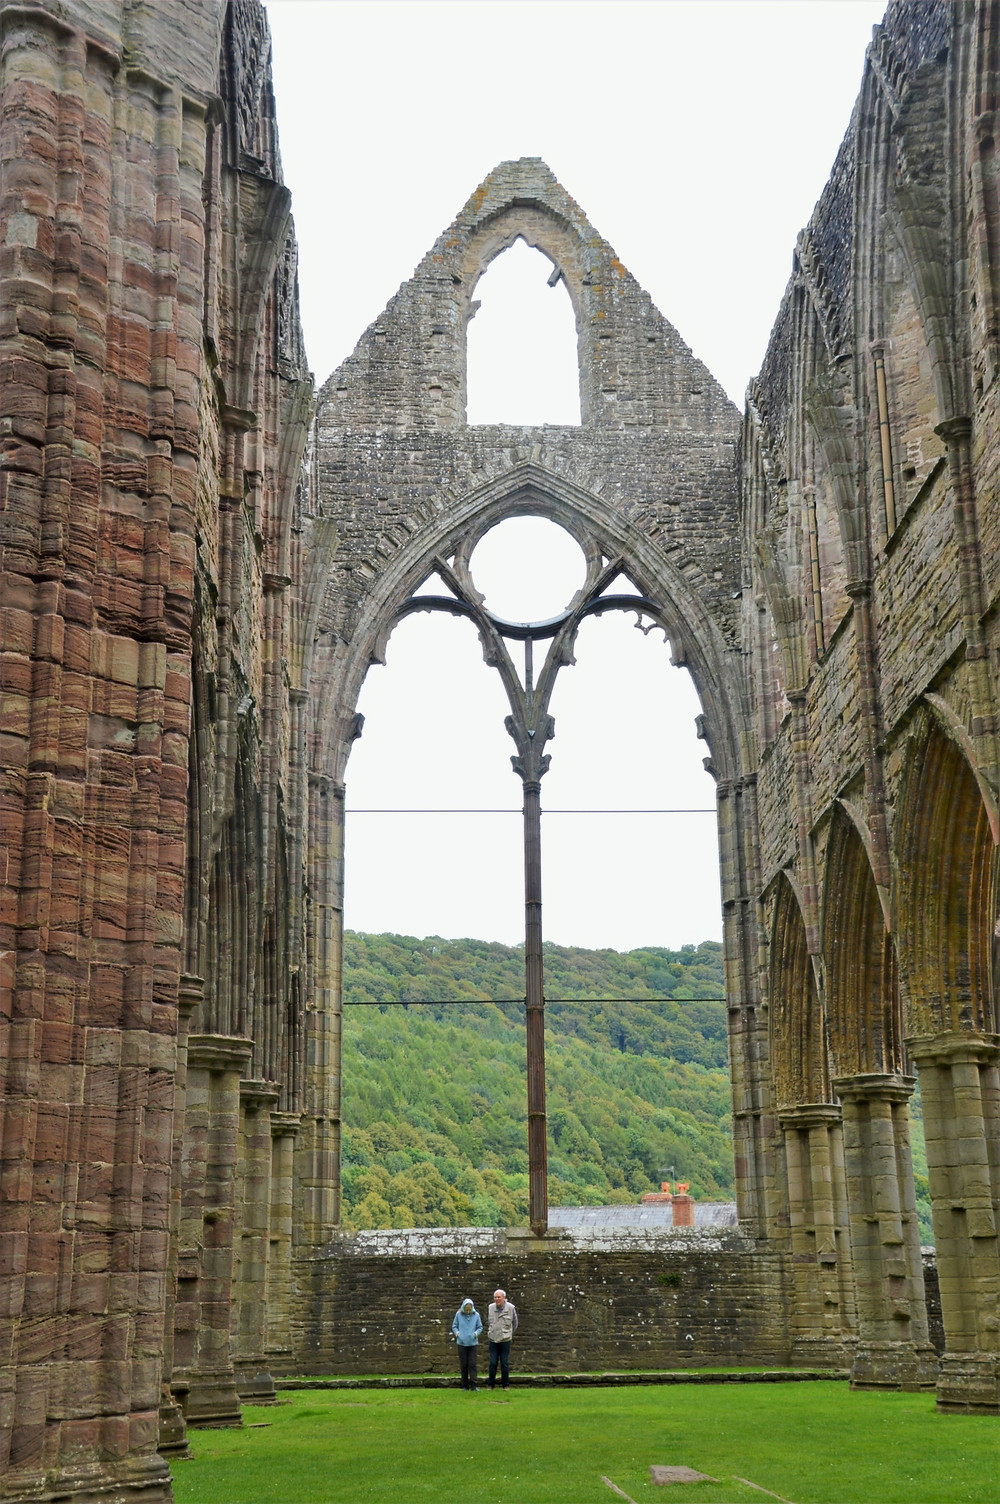 Ruins of the great window in the east end of Tintern Abbey in Southern Wales.  Slender central mullion and circular window from Tintern Abbey East Walls.